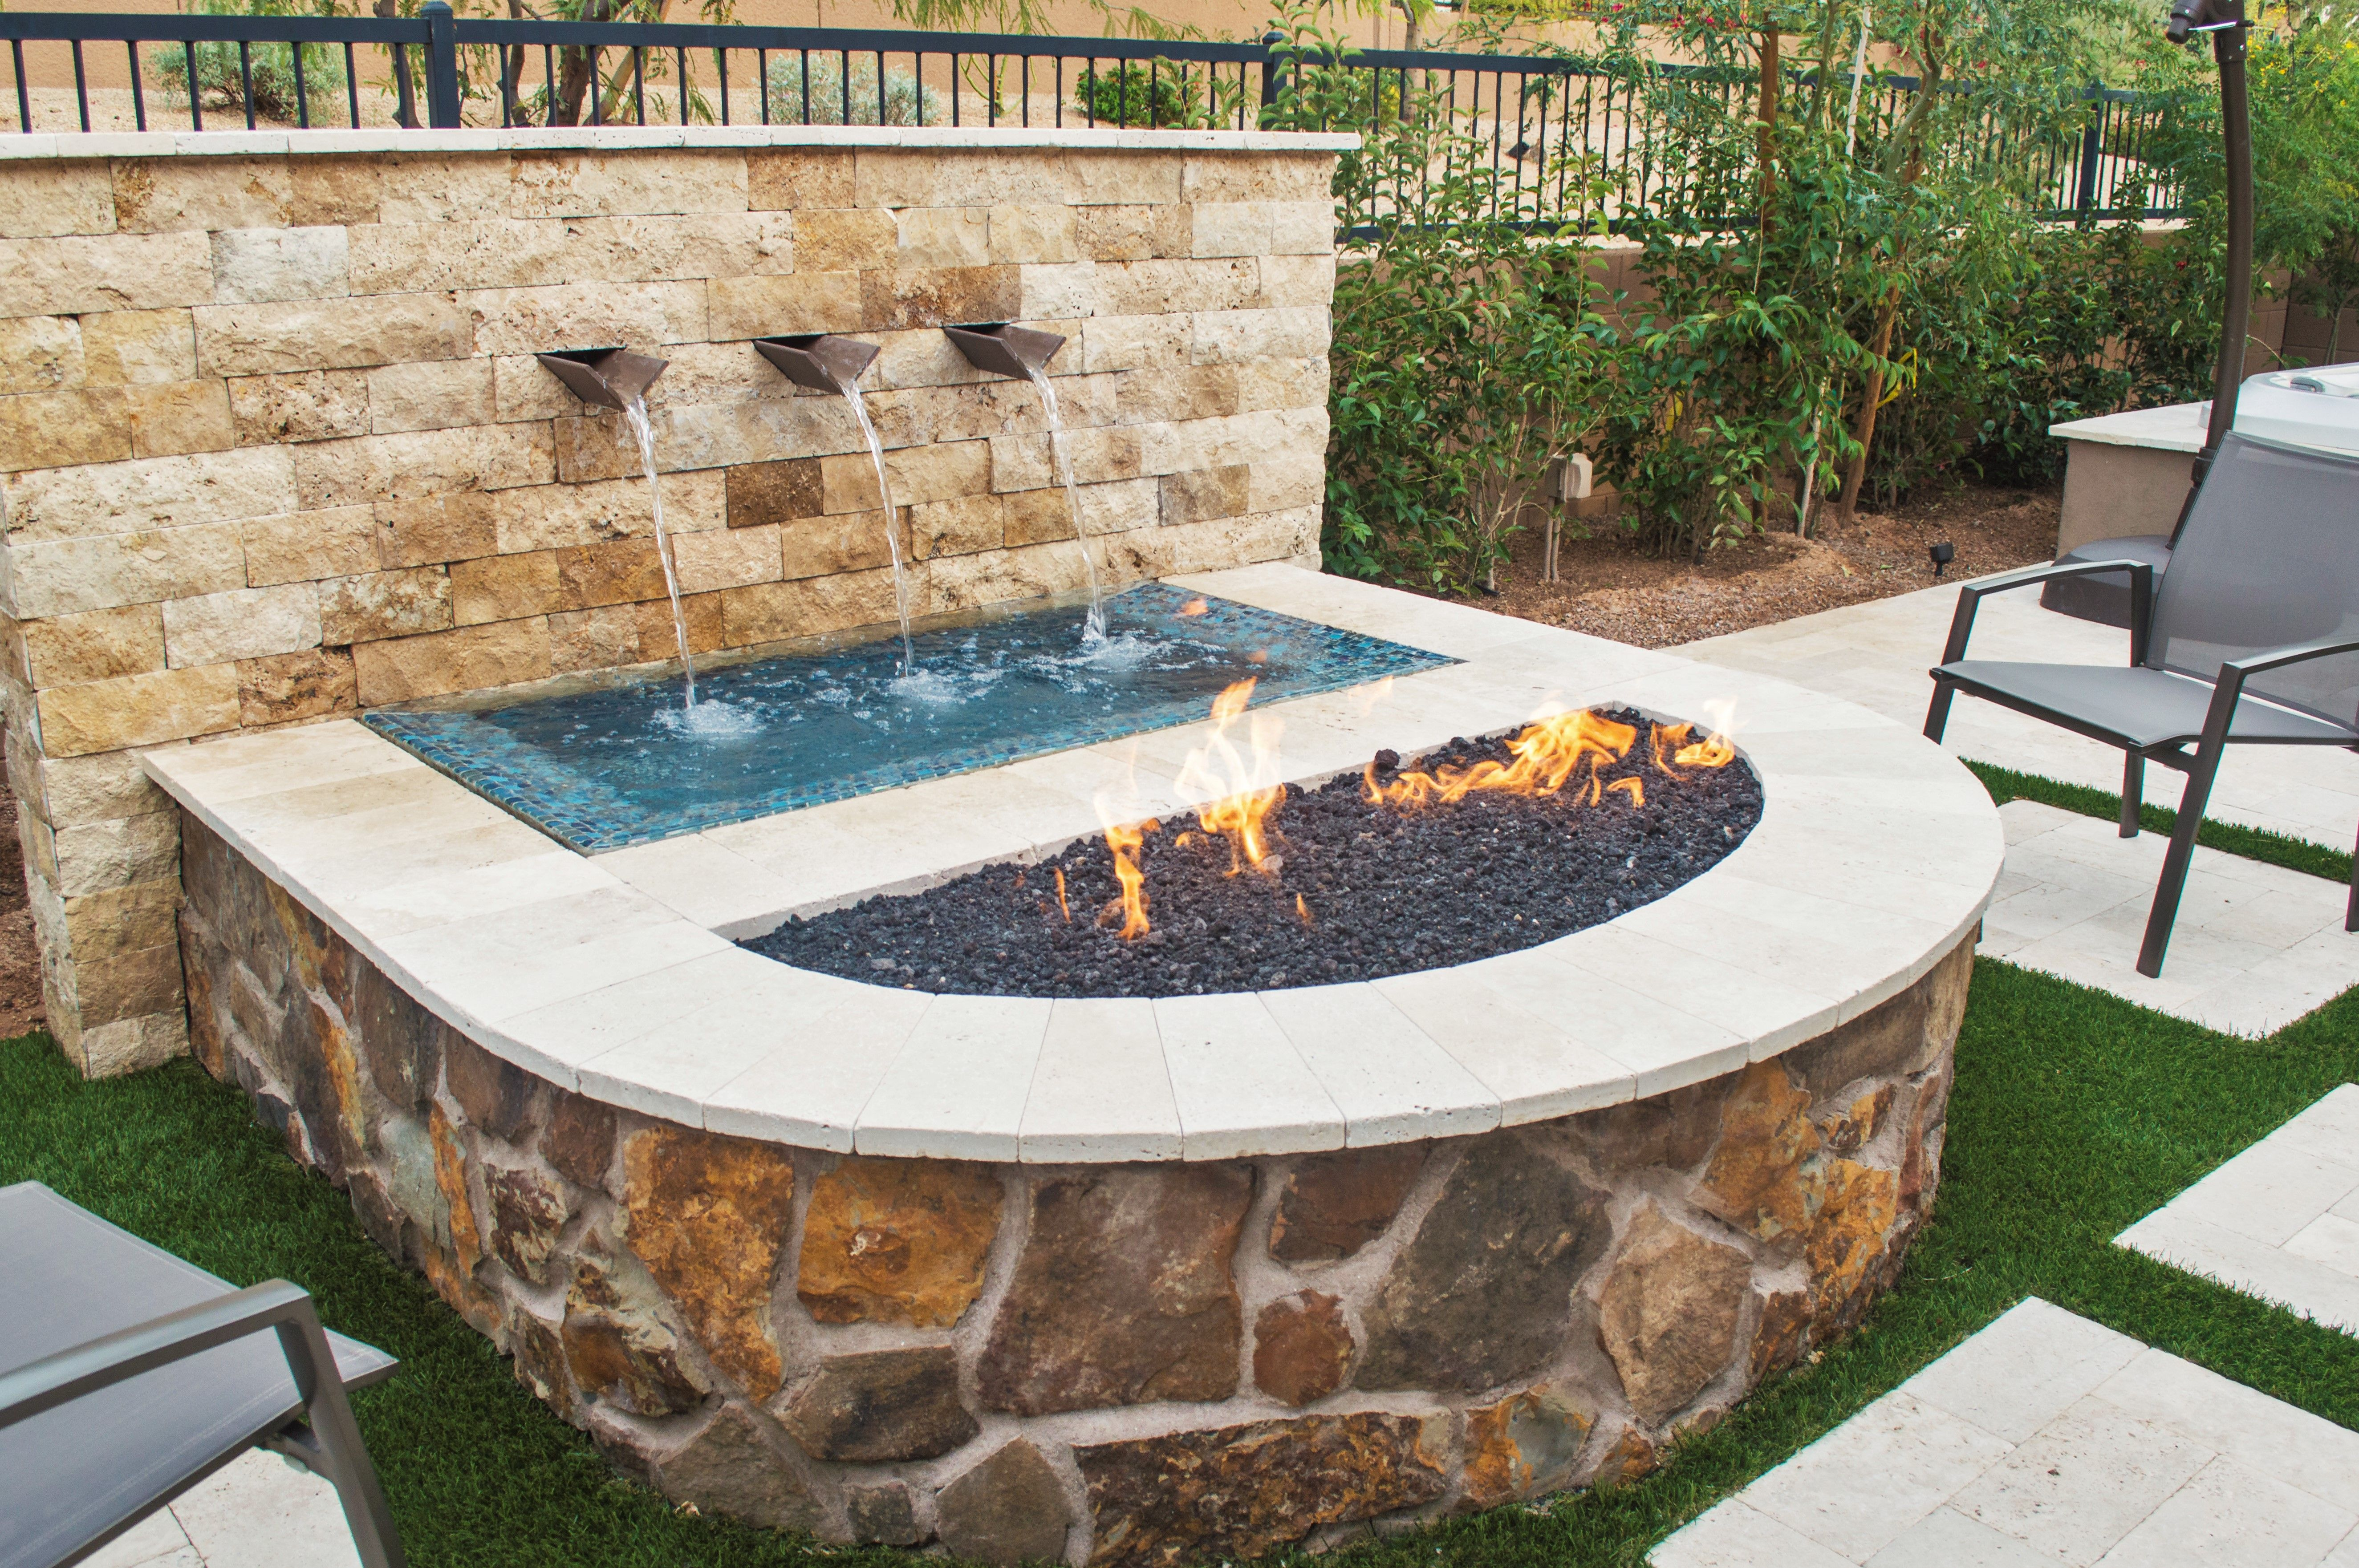 3bd9a1db3d3a84d1f6f9ae9299b02e8b Top Result 50 Awesome Fire Pit Store Photography 2018 Hzt6